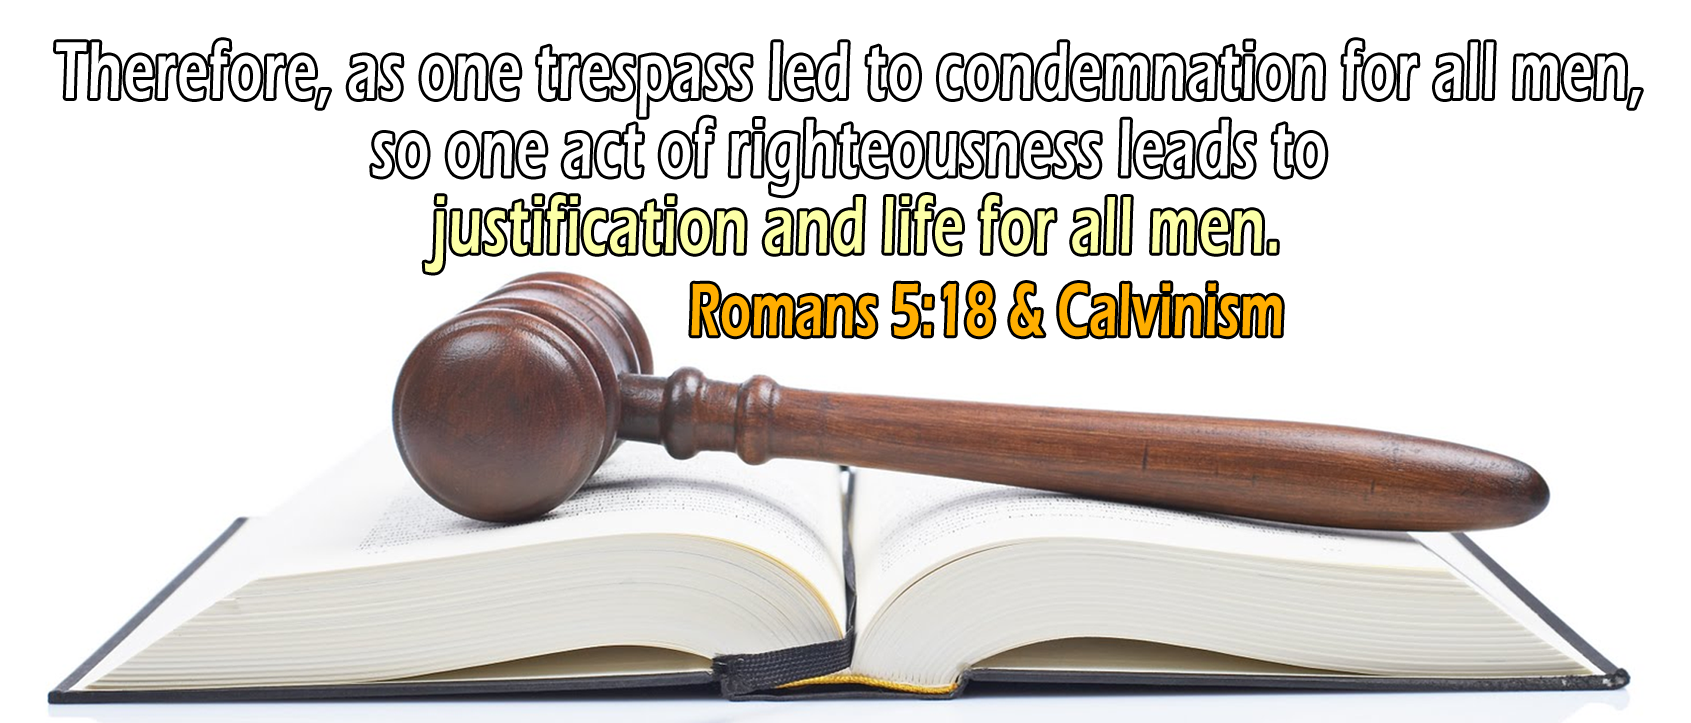 Romans 5:18-19, 'justification and life for all men'